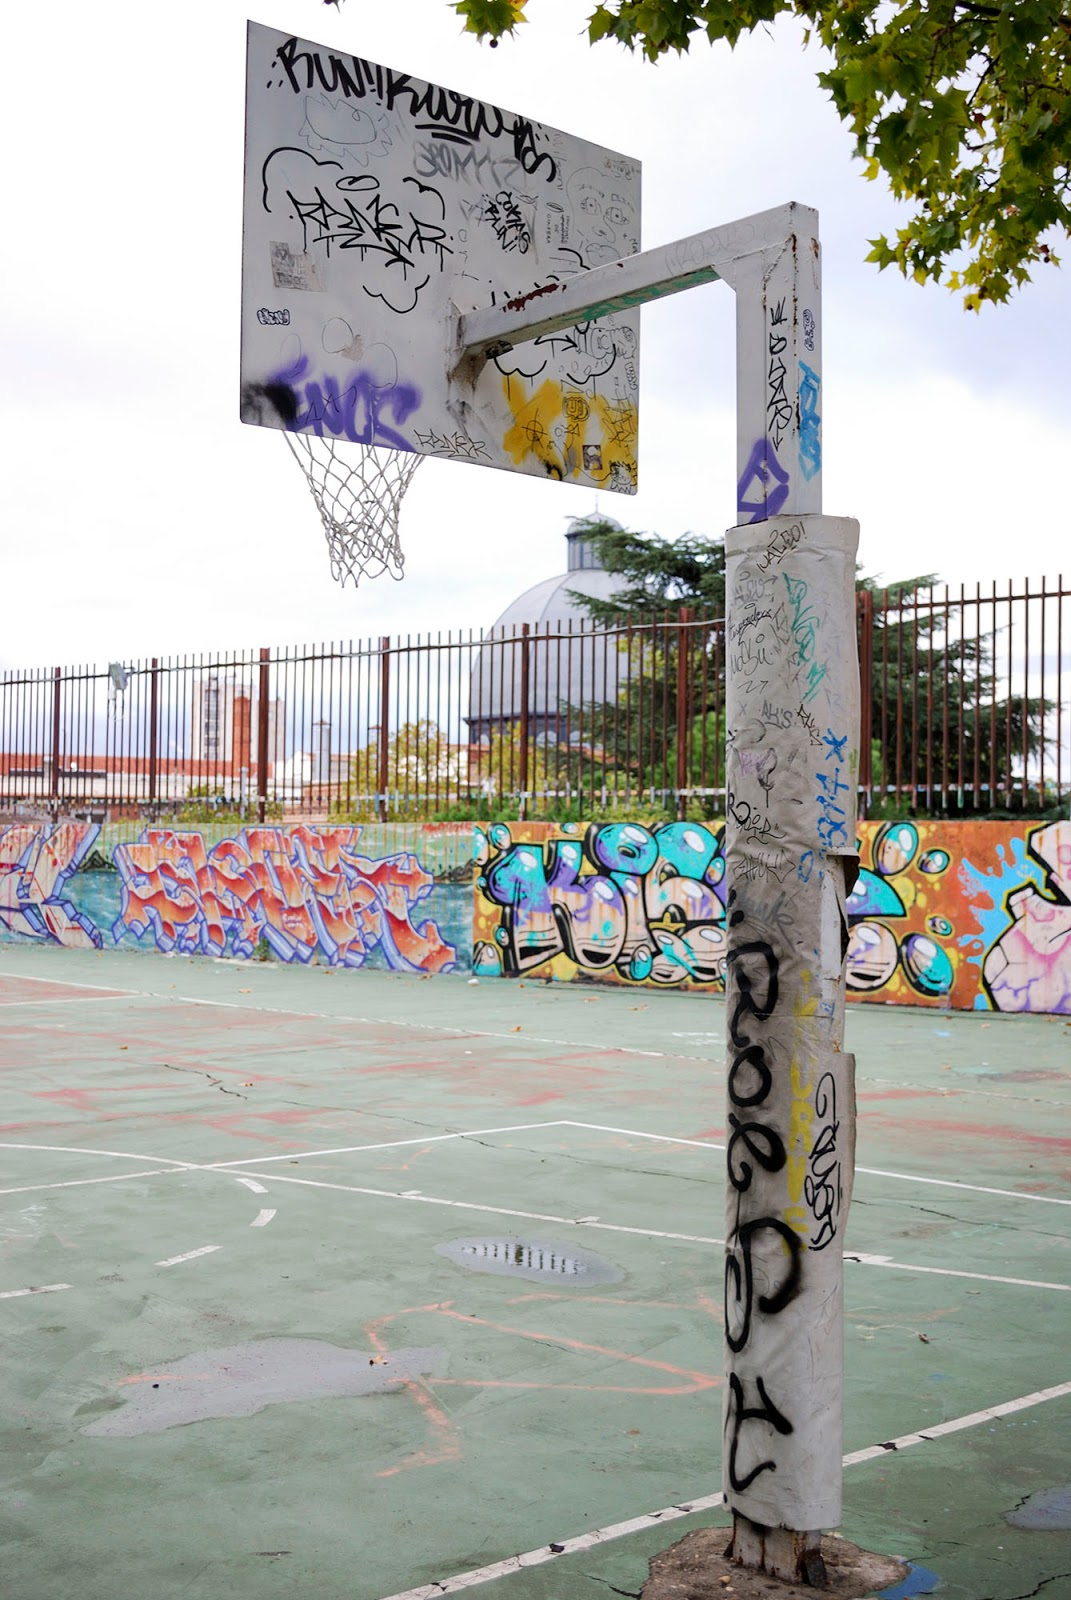 graffiti madrid basketball court urban art sport workout